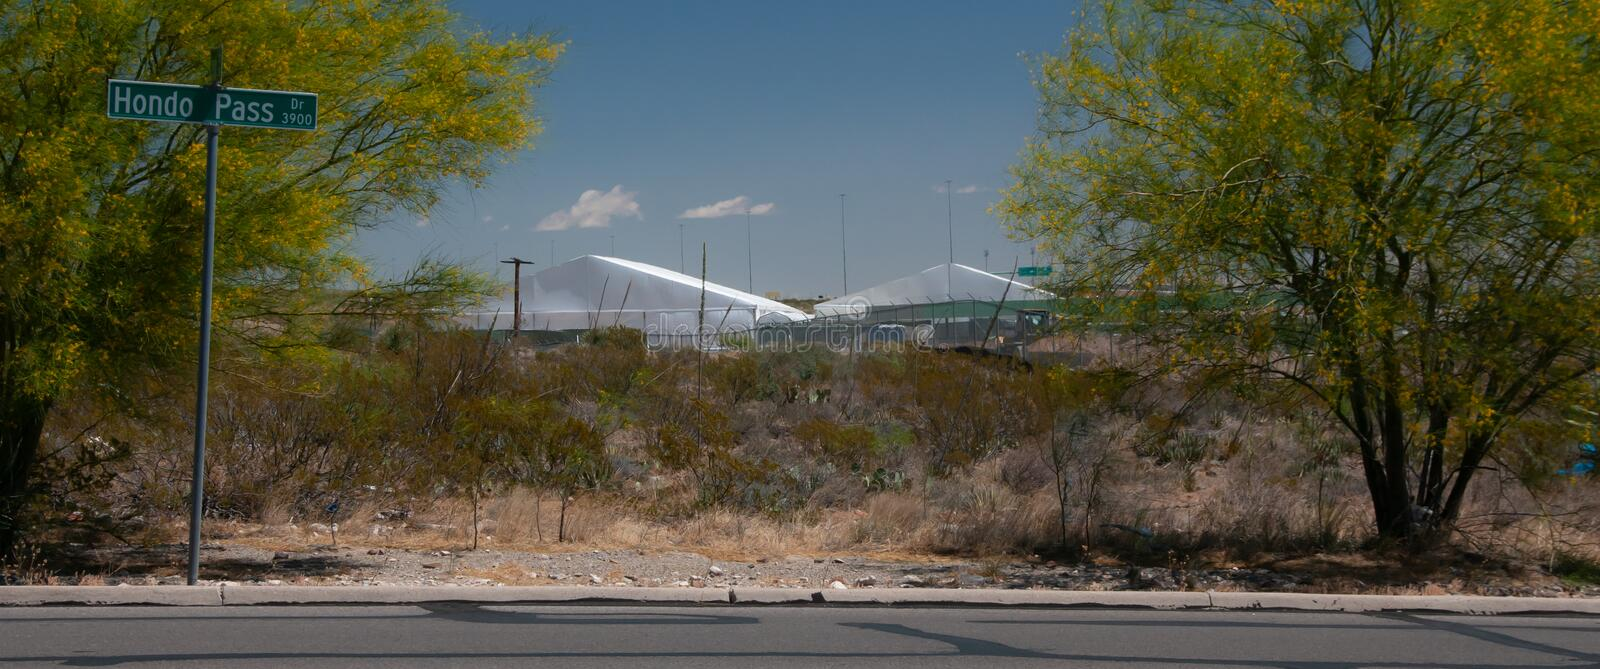 Border Patrol Station, El Paso Texas New tent temporary housing and processing center stock photos